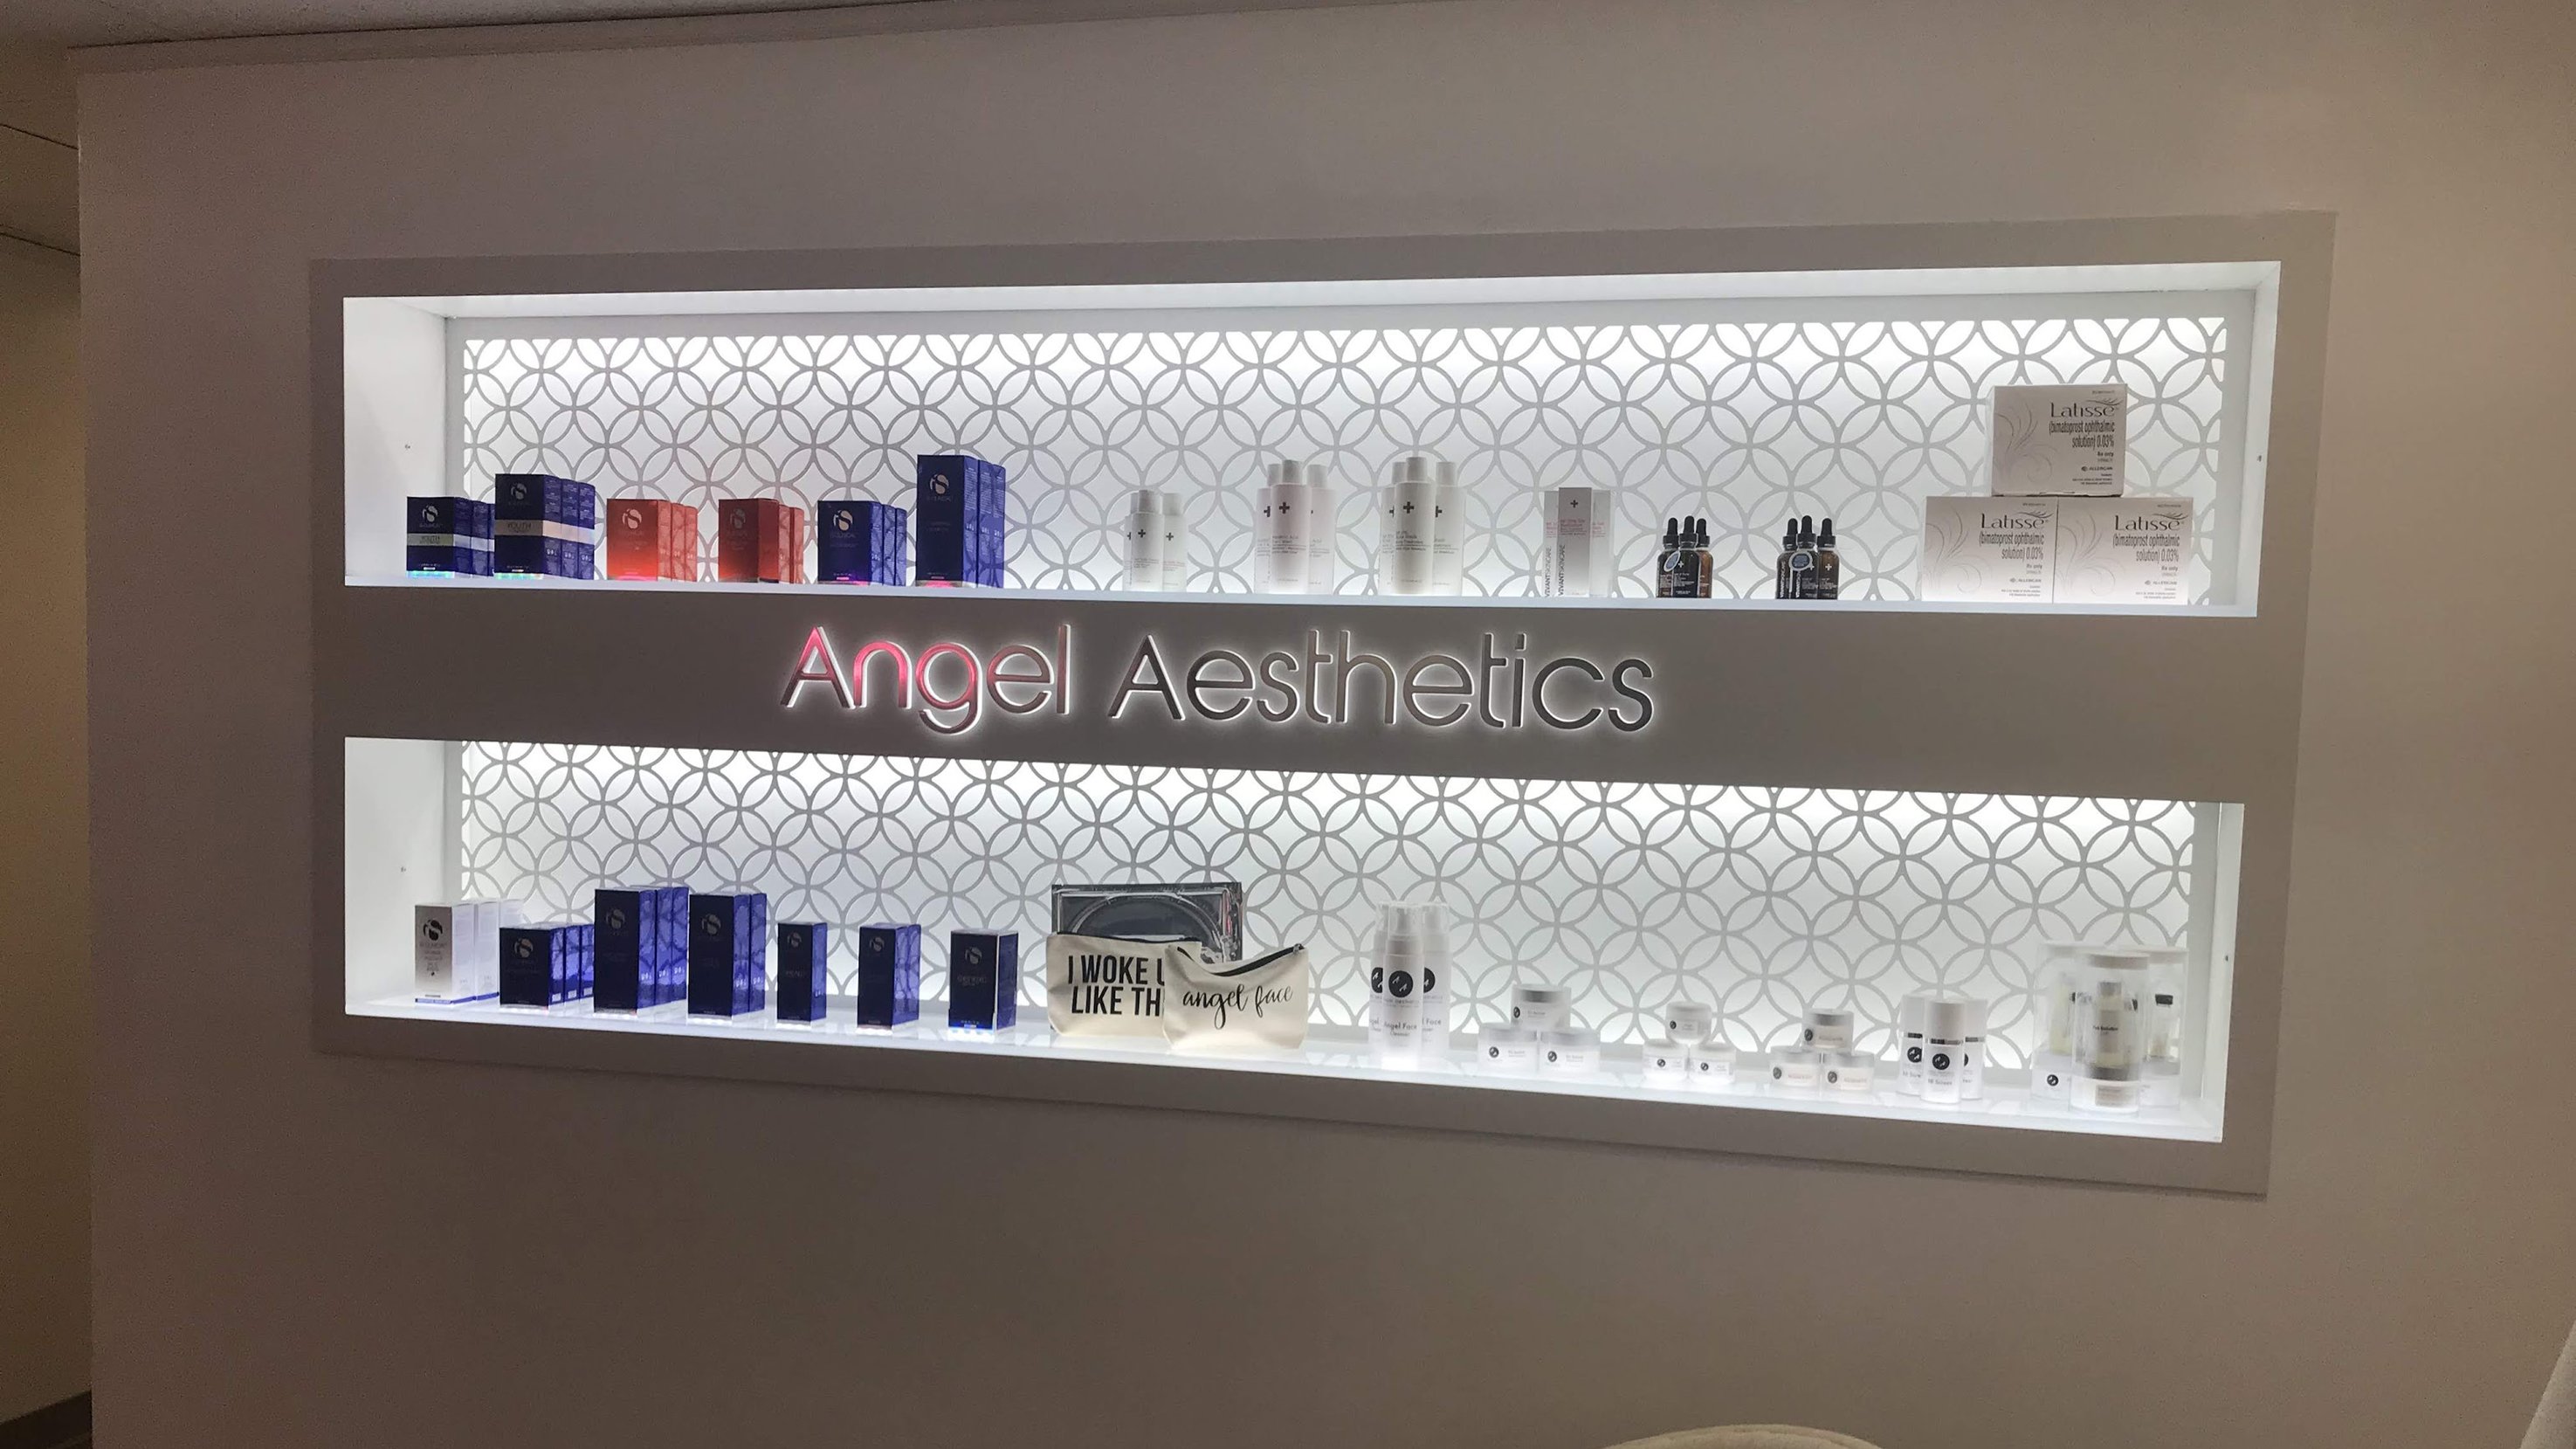 Angel Aesthetics Shelf2